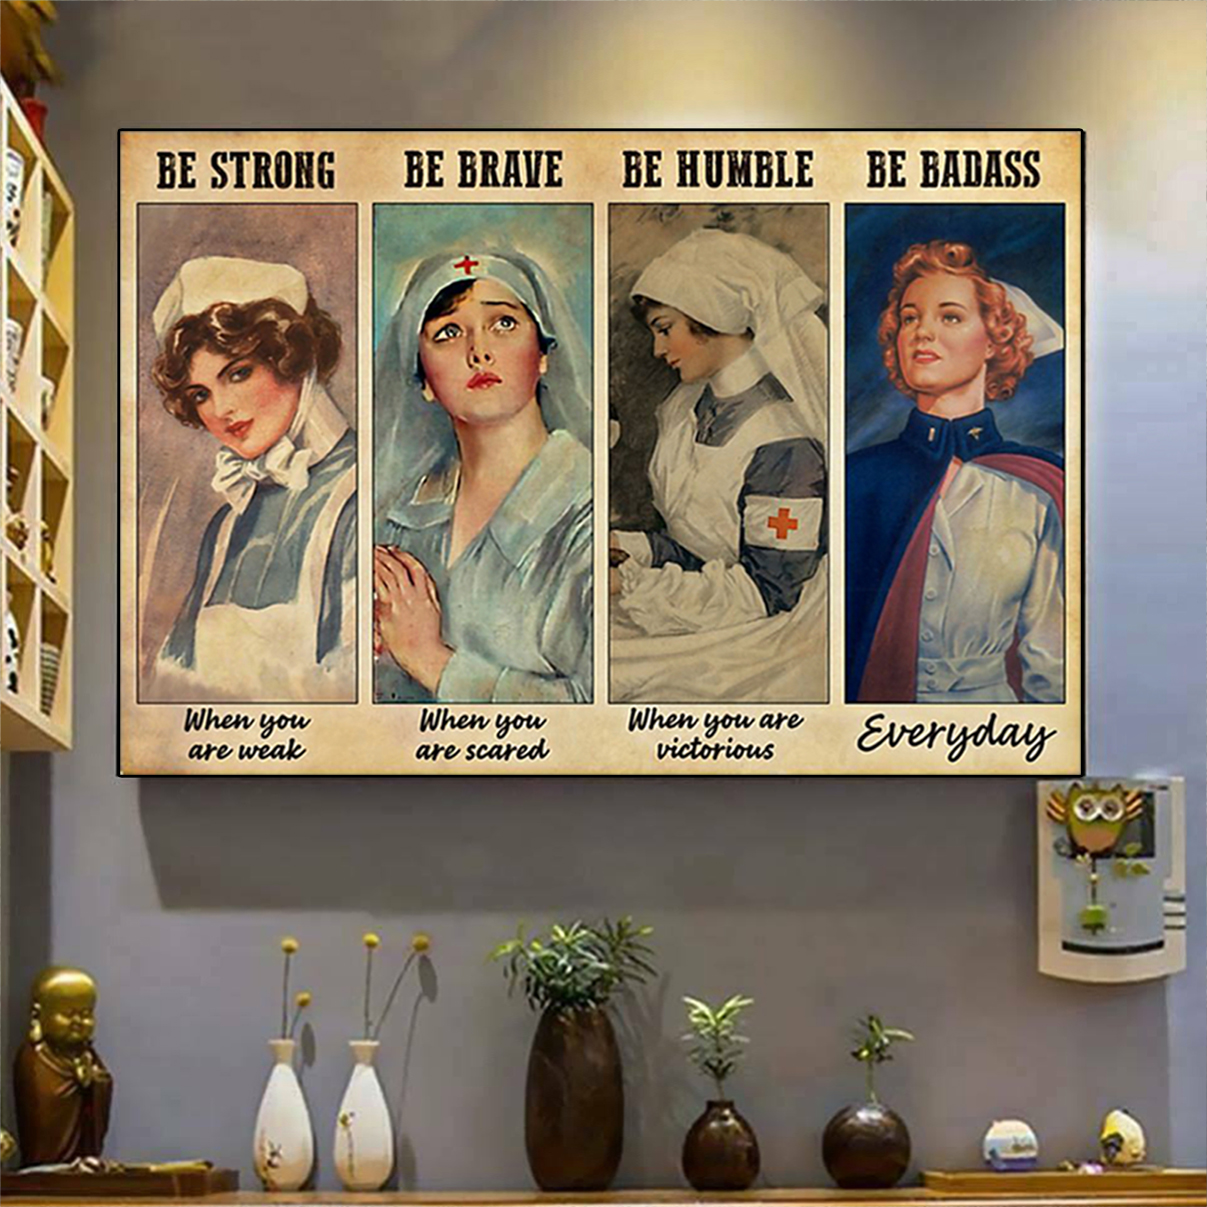 Be strong be brave be humble be badass nurses poster A3